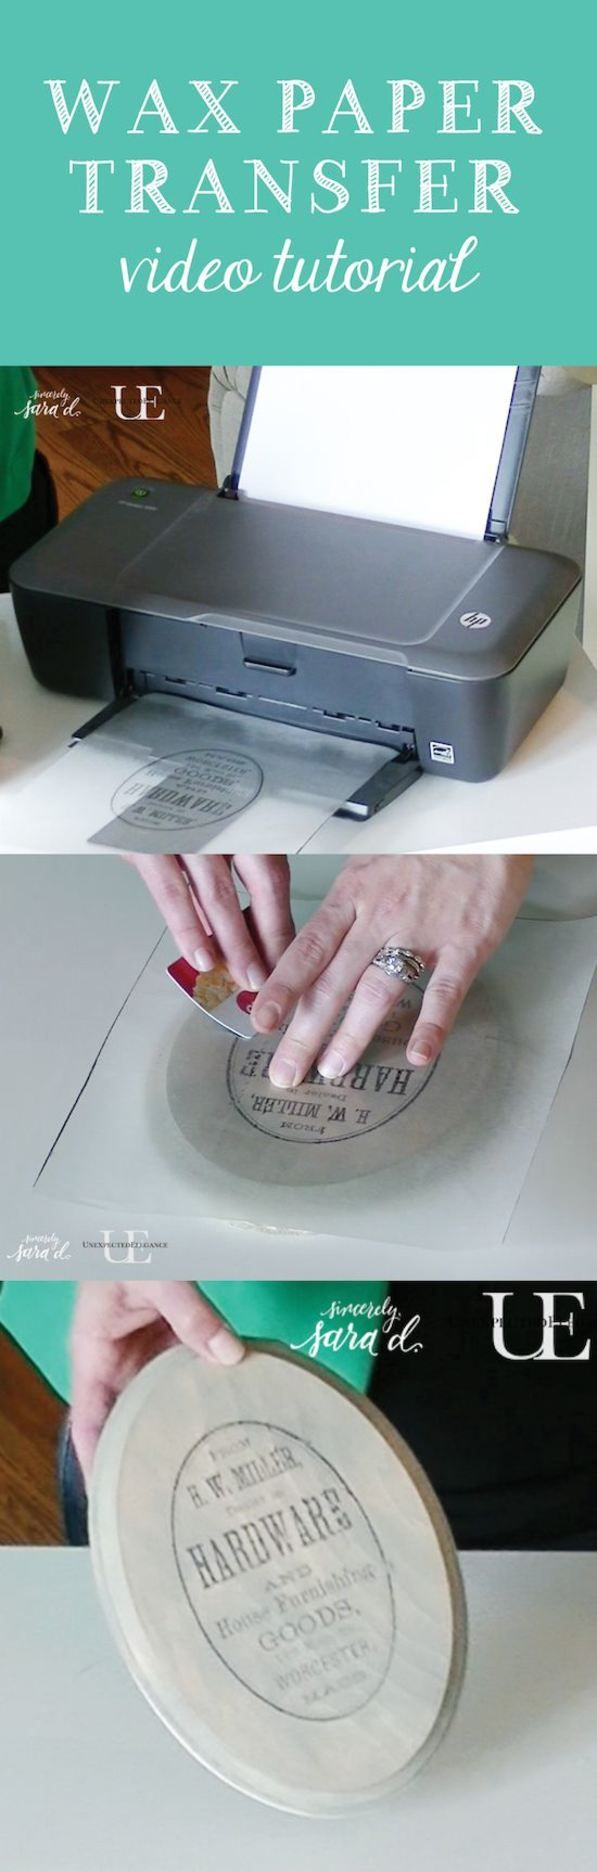 Video Tutorial: Using wax paper to transfer an image- diy crafts idea- great project